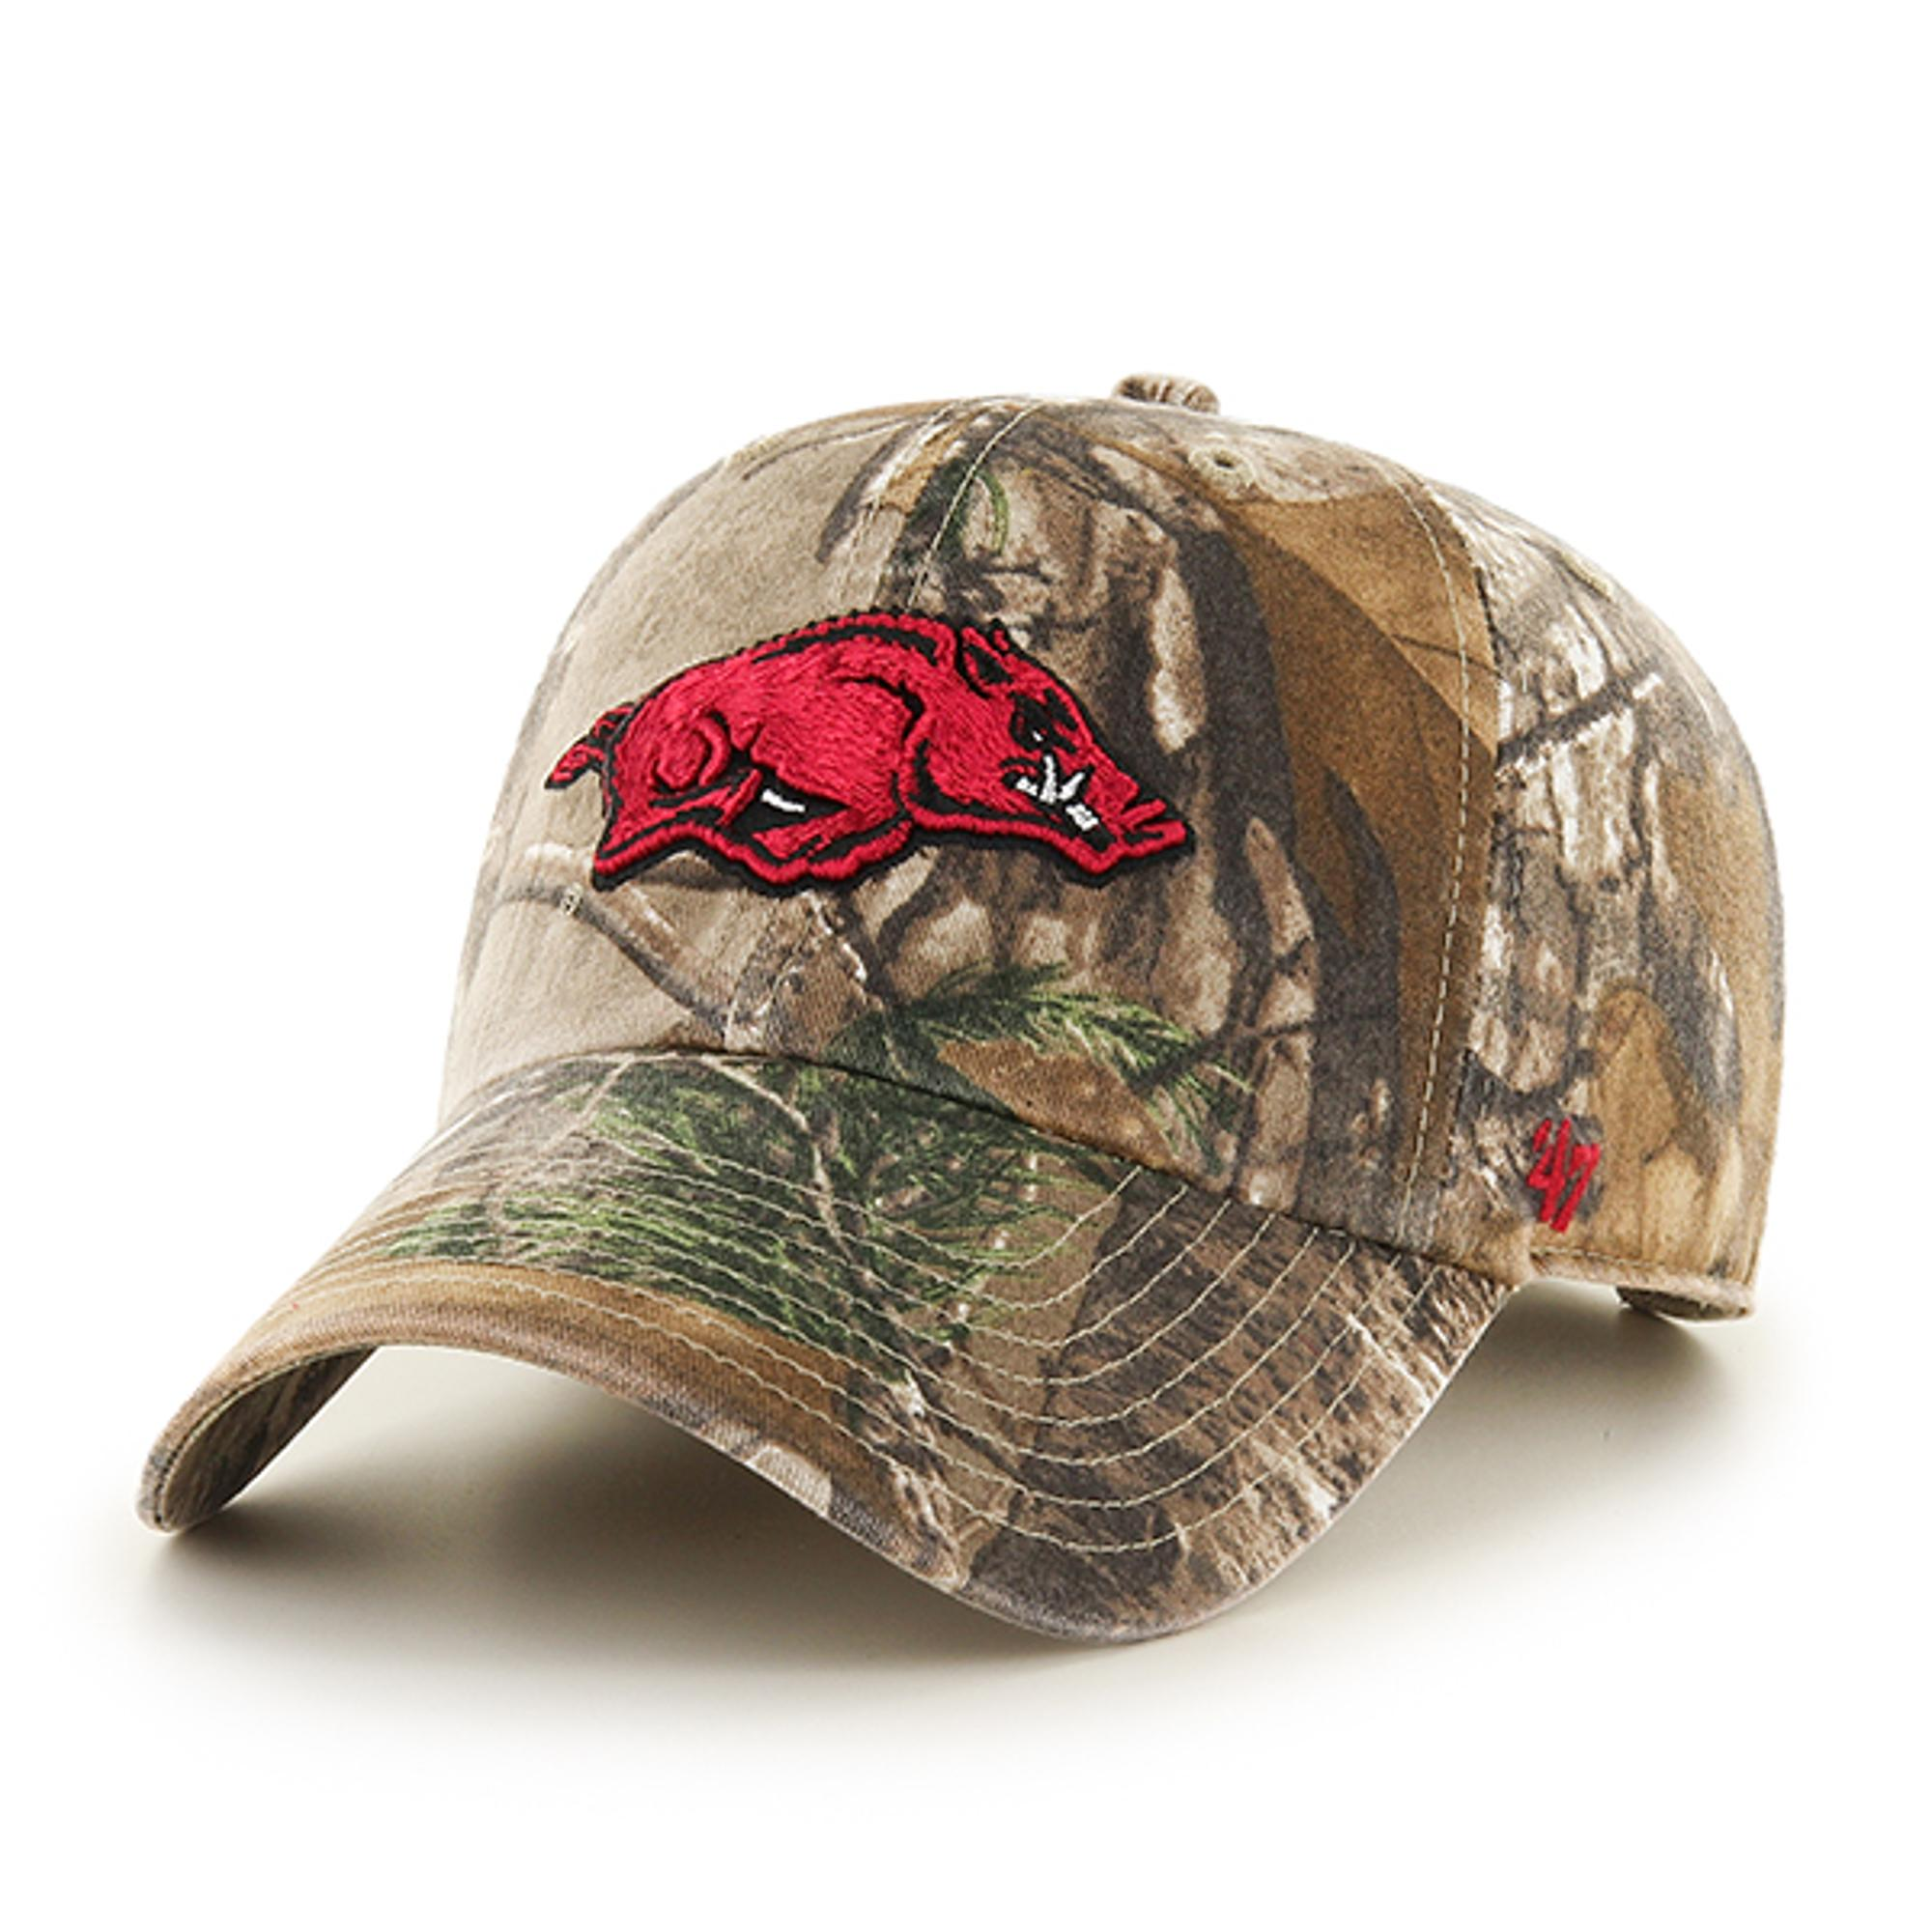 image of: Arkansas Razorbacks '47 Running Hog Hat - Realtree Camo